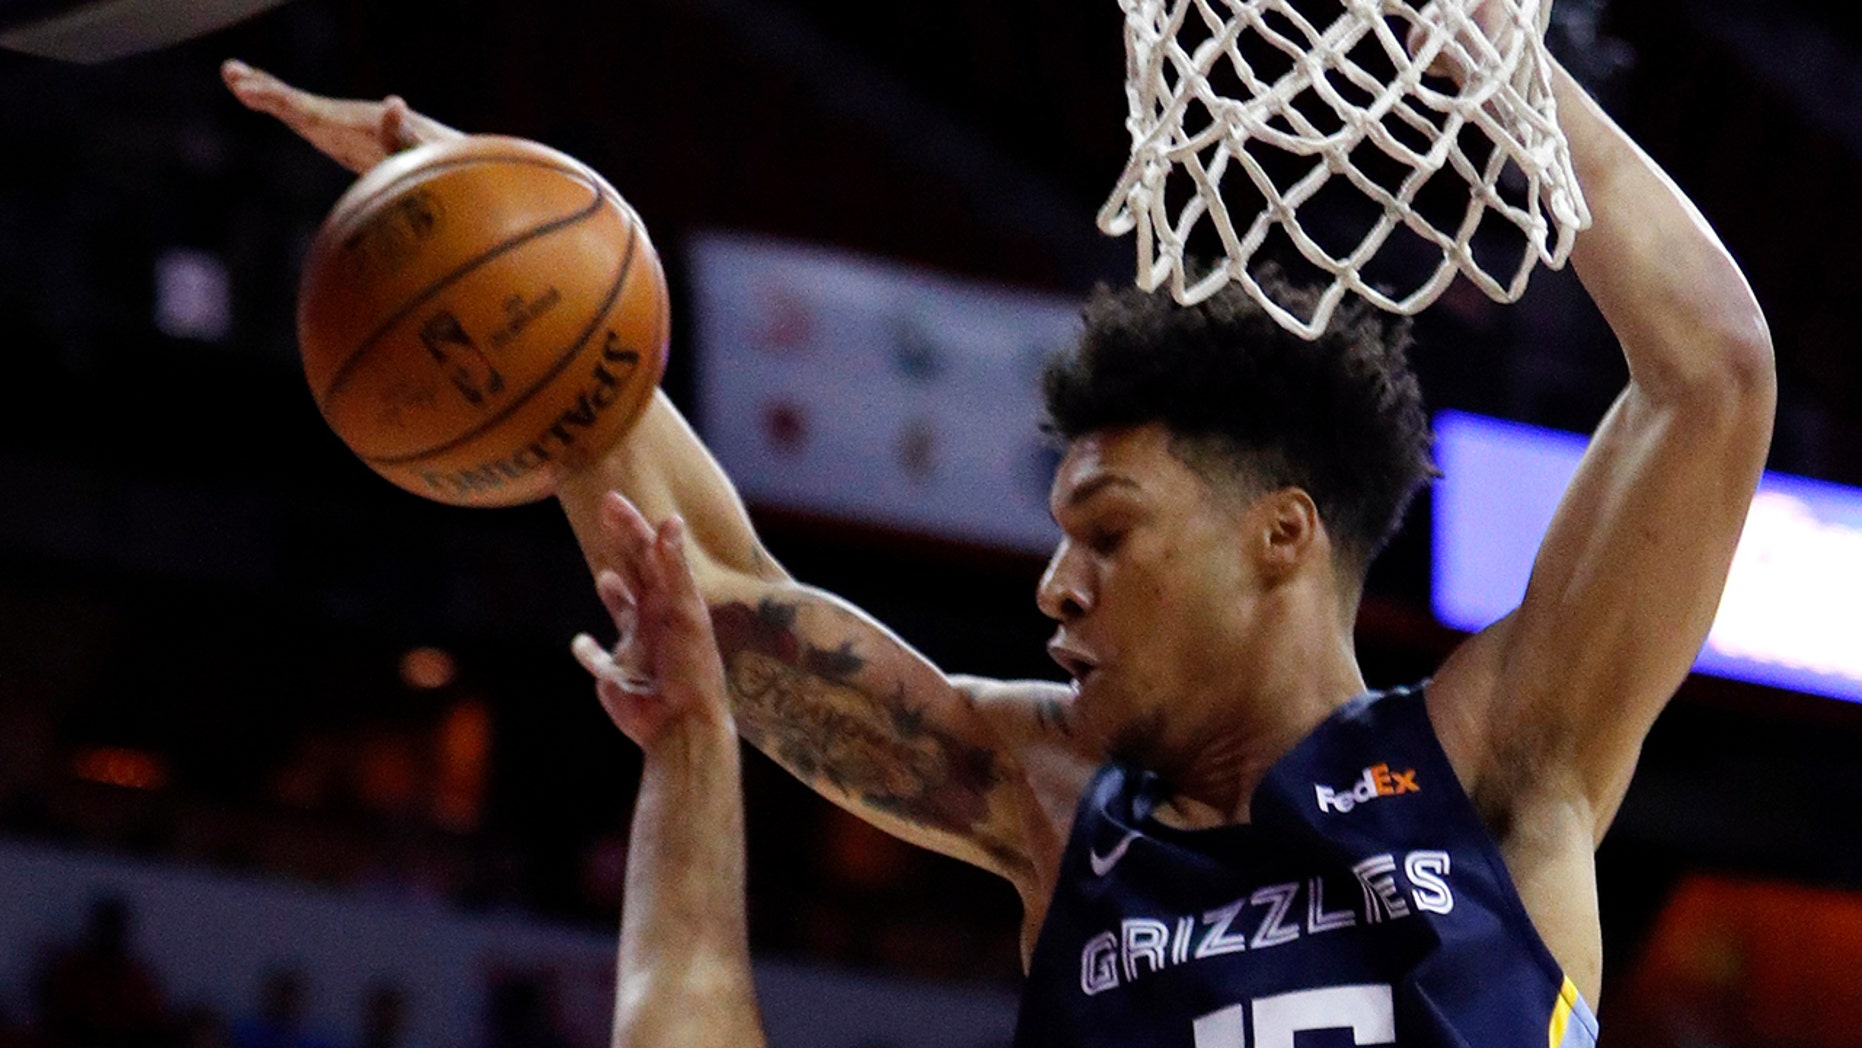 Westlake Legal Group NBA-Brandon-Clarke Clarke's double-double leads Grizzlies to title fox-news/sports/nba/the-memphis-grizzlies fox-news/sports/nba/minnesota-timberwolves fox-news/sports/nba fnc/sports fnc b47034ff-dcf7-5734-8ad9-2fef9d751ebf Associated Press article